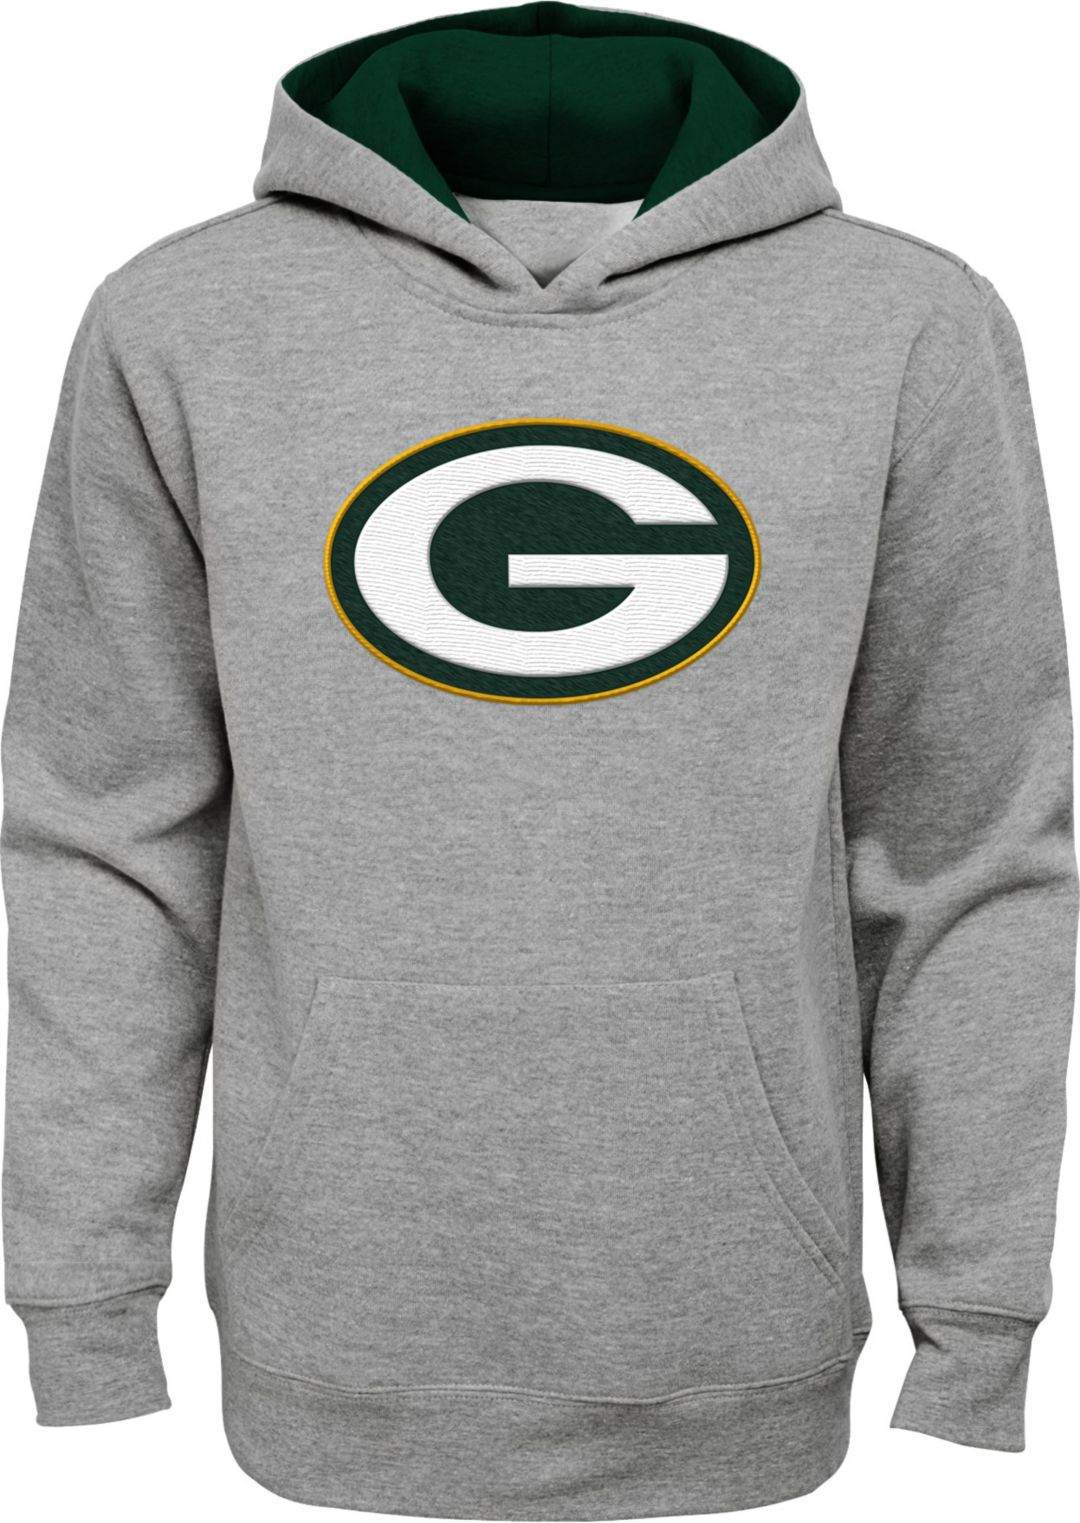 official photos 0840a 64800 NFL Team Apparel Youth Green Bay Packers Prime Grey Pullover Hoodie